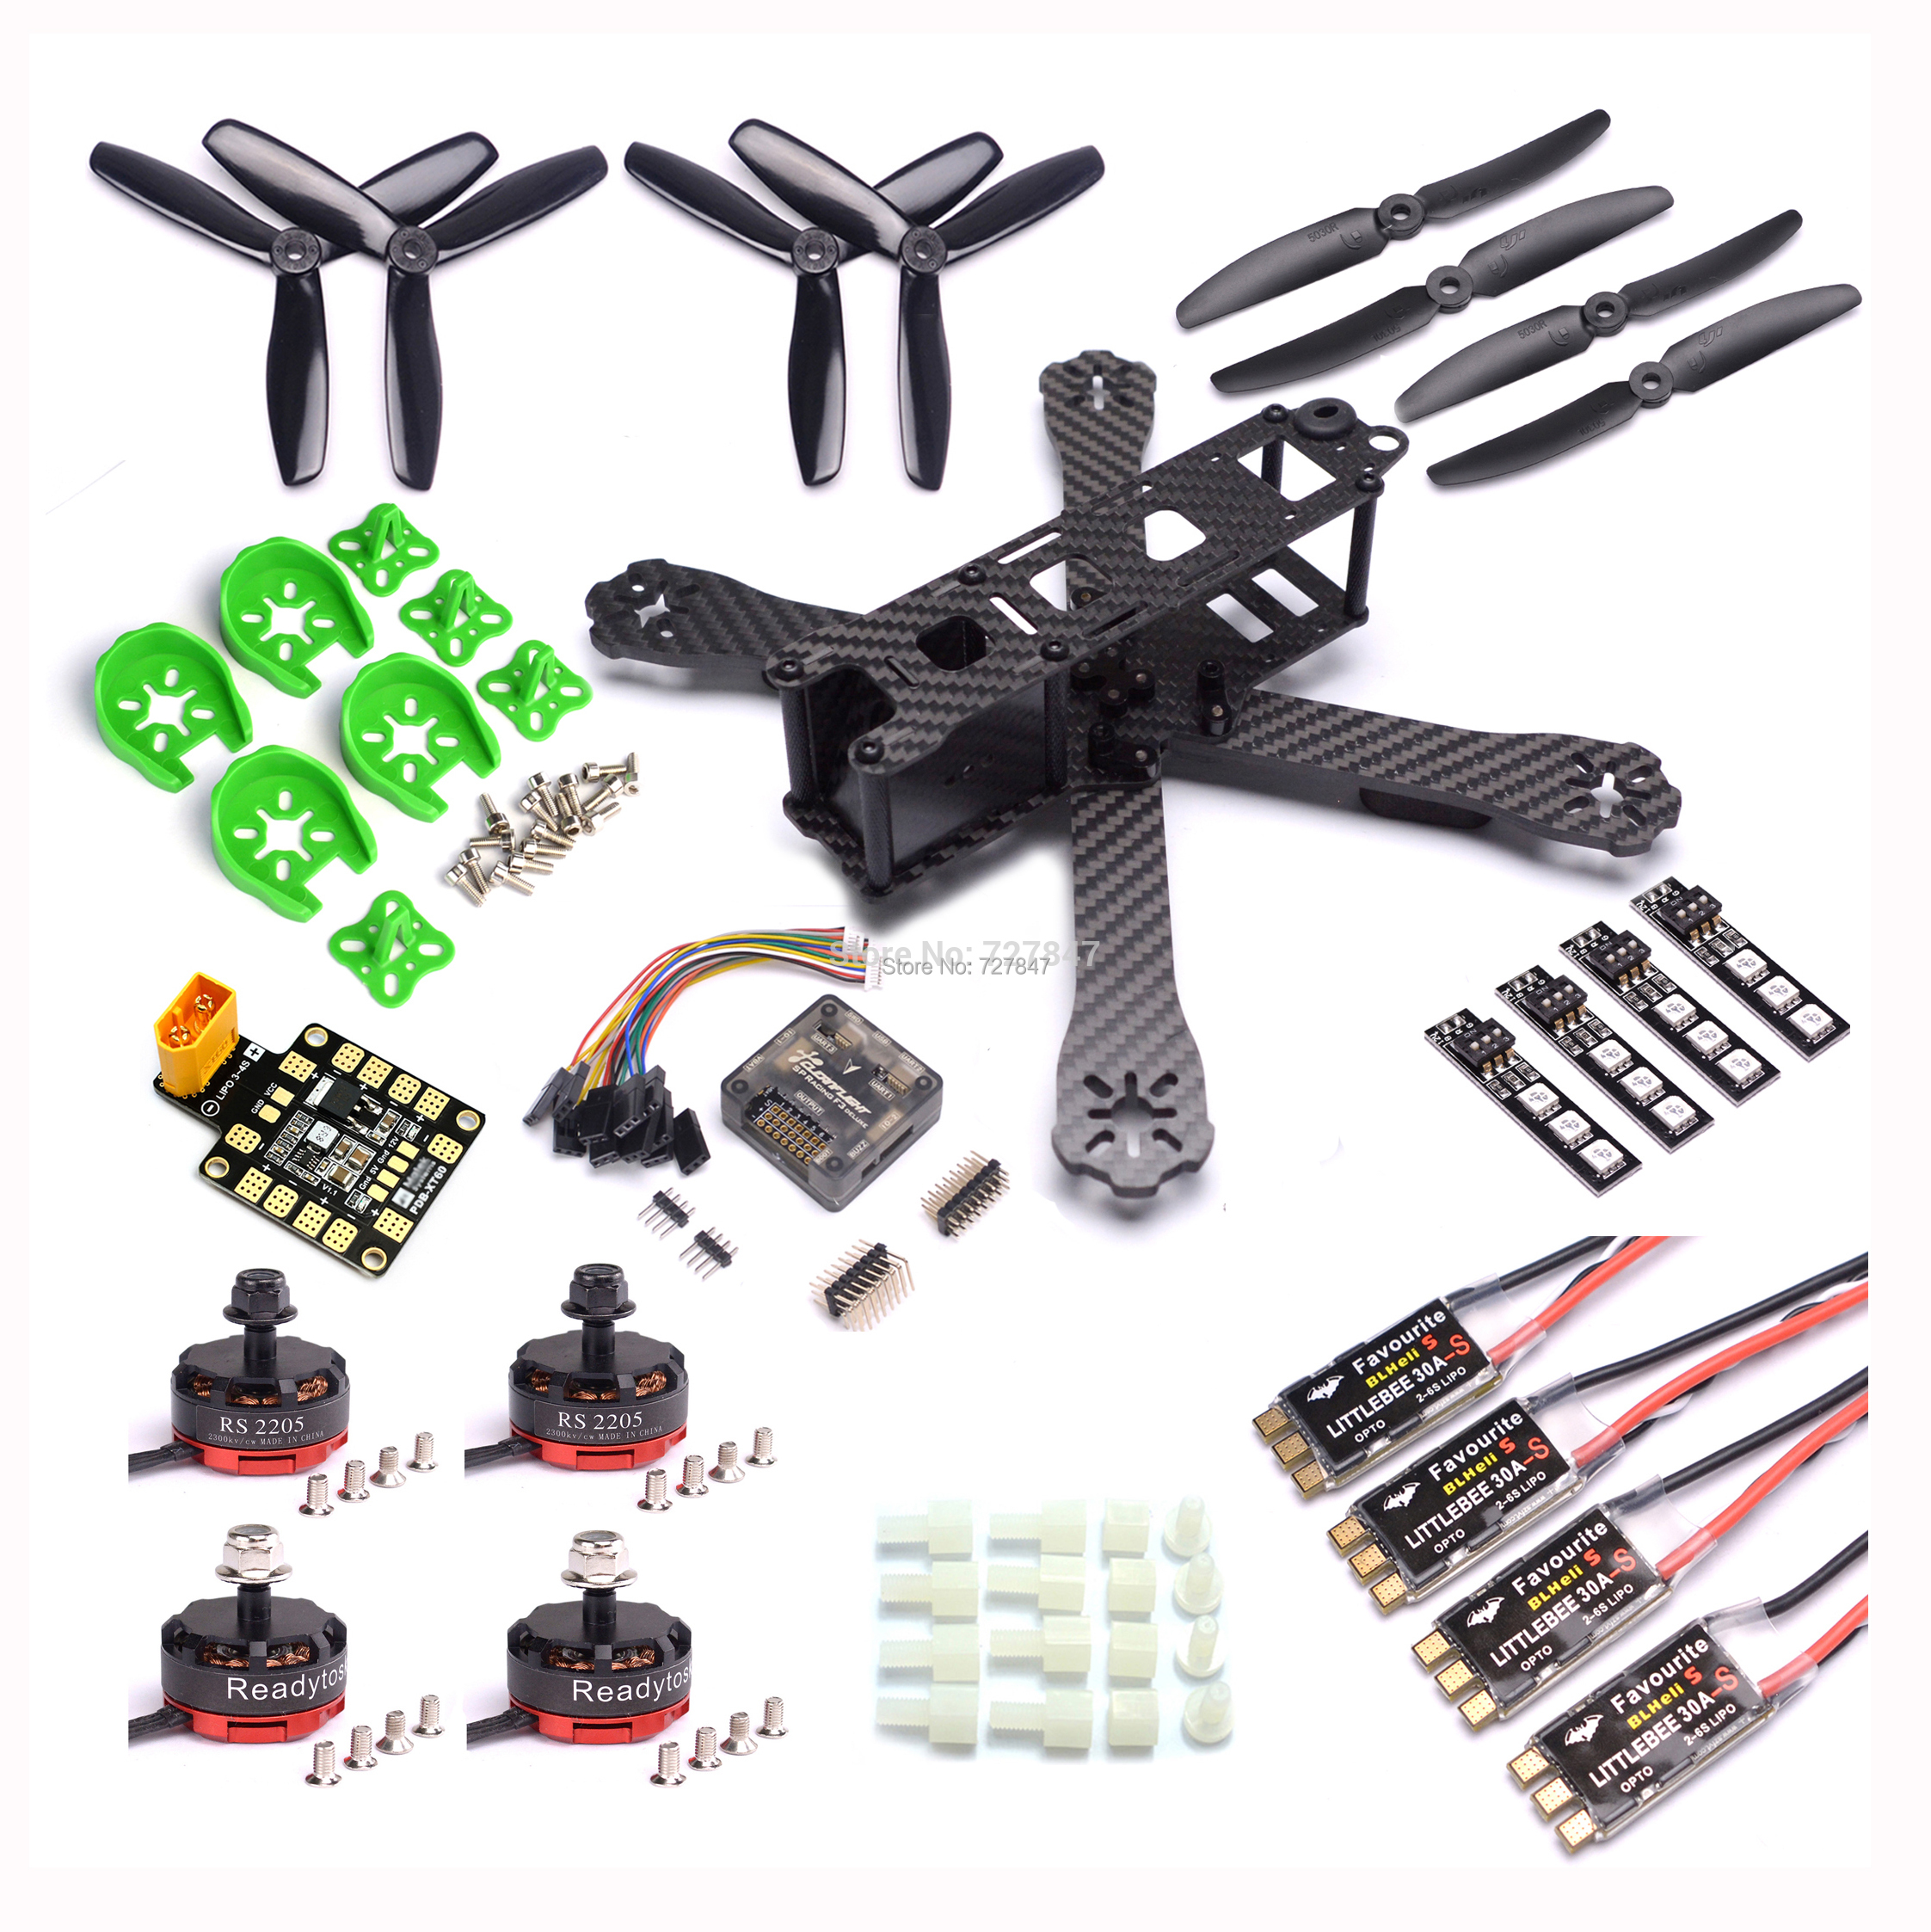 QAV-R 220mm Carbon Fiber Racing Drone Quadcopter QAV-R 220 F3 Flight Controller RS2205 2300KV Motor LittleBee 30A-S ESC BLHeli